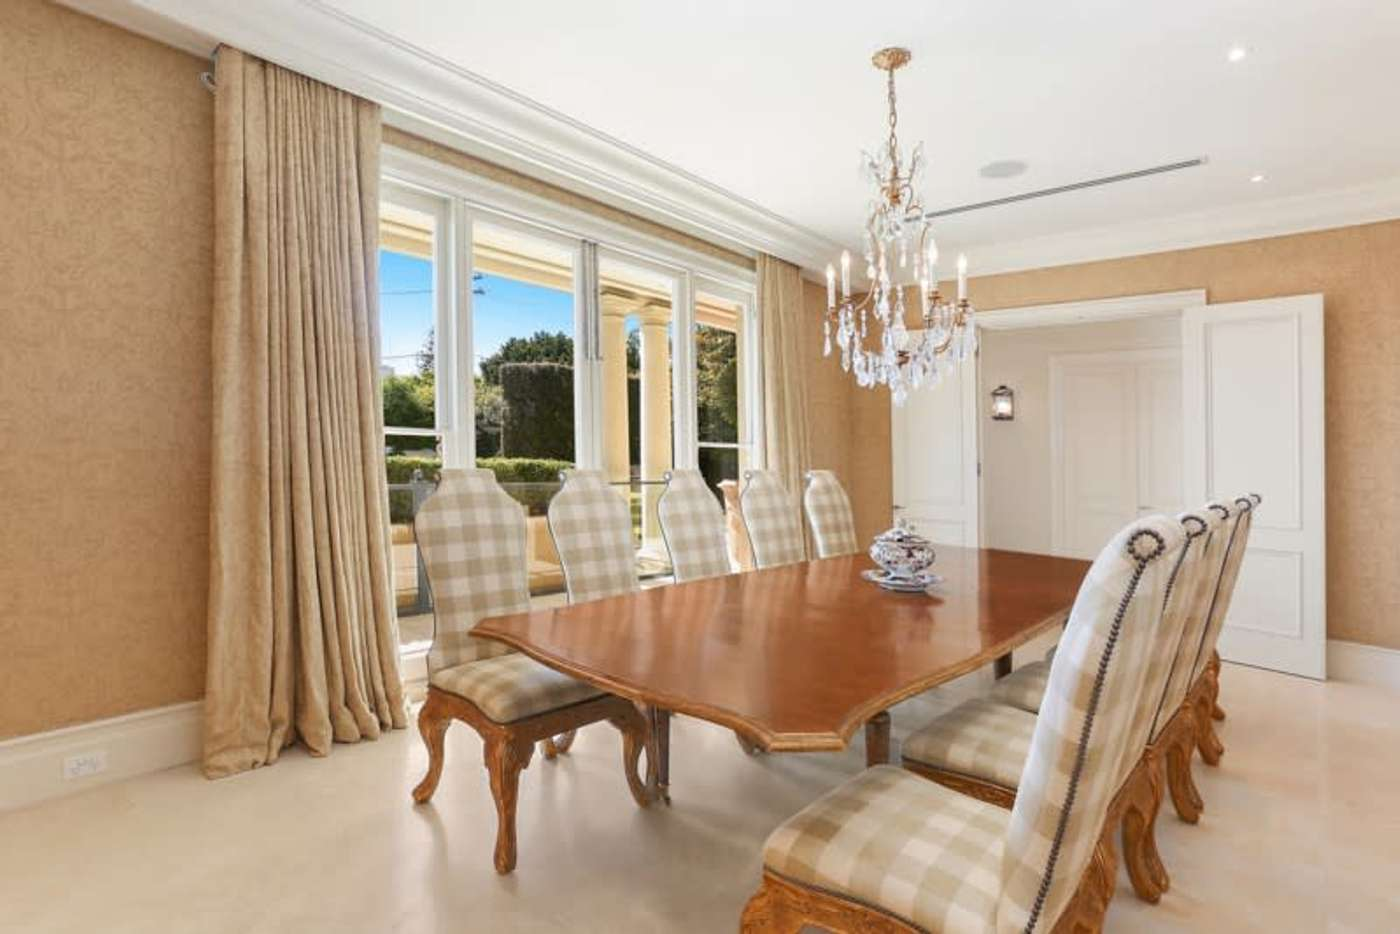 Sixth view of Homely house listing, 9 Black Street, Vaucluse NSW 2030